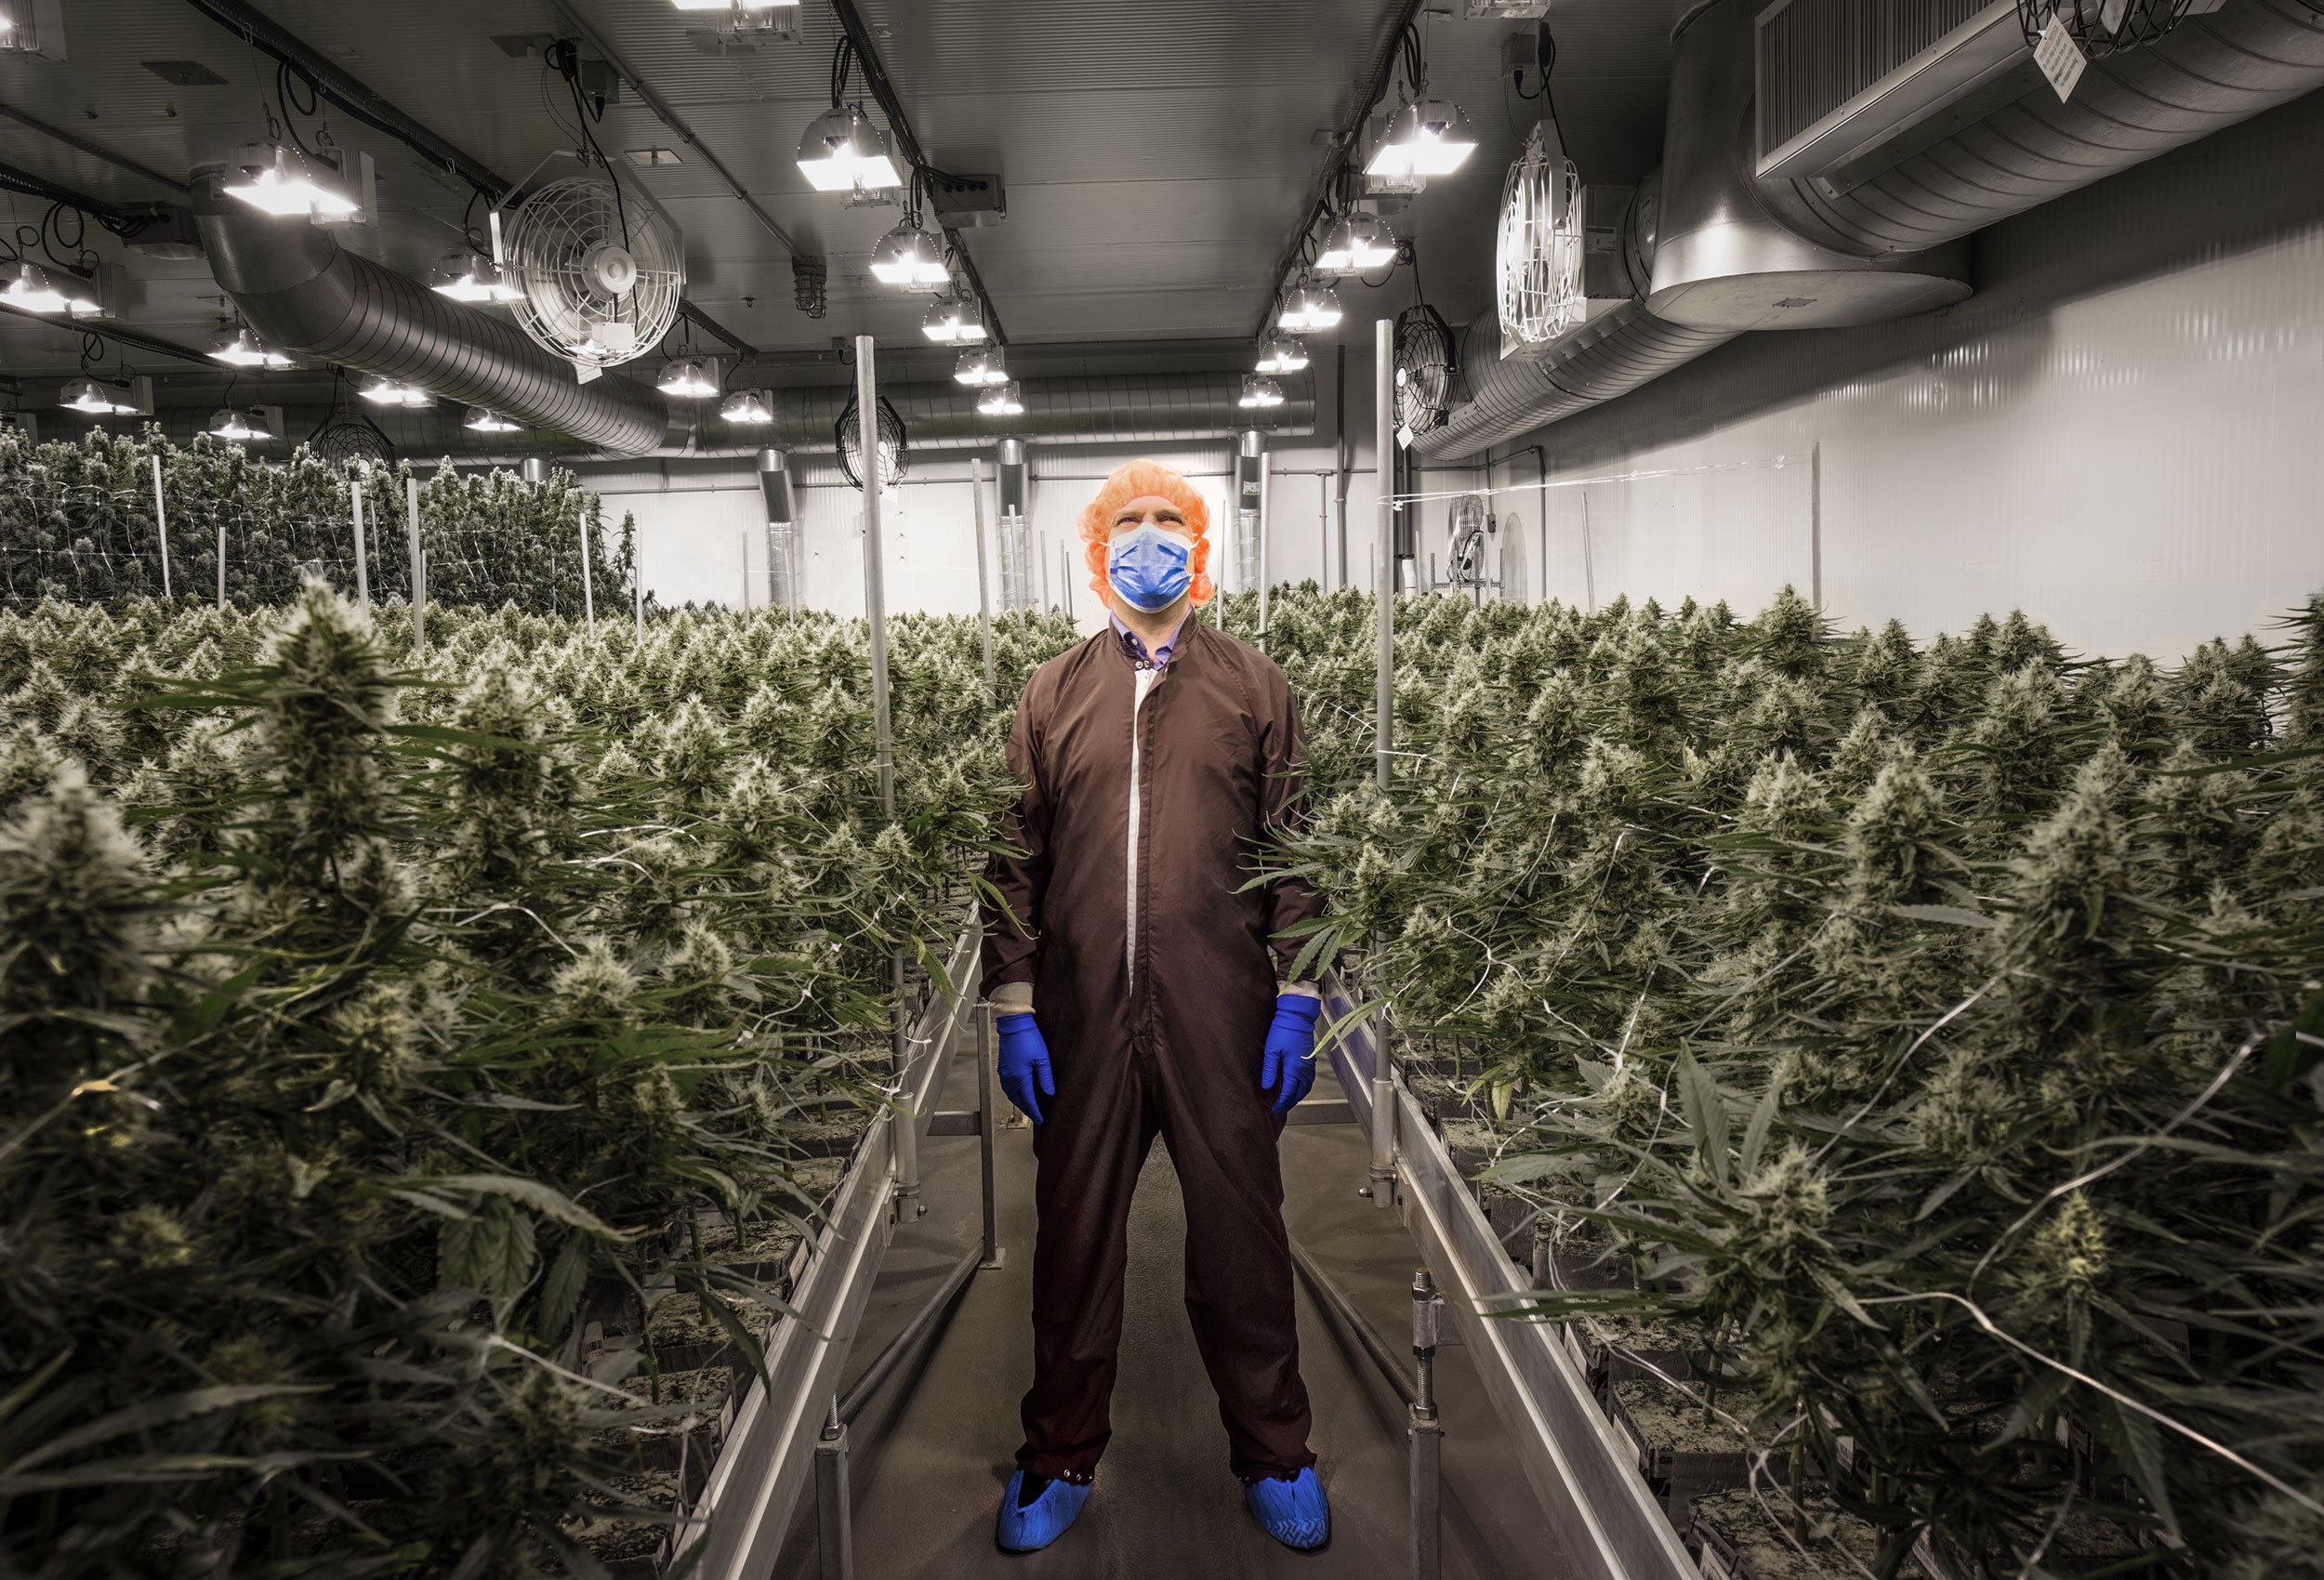 Aurora Cannabis greenhouse by Canadian cannabis photographer John Hryniuk